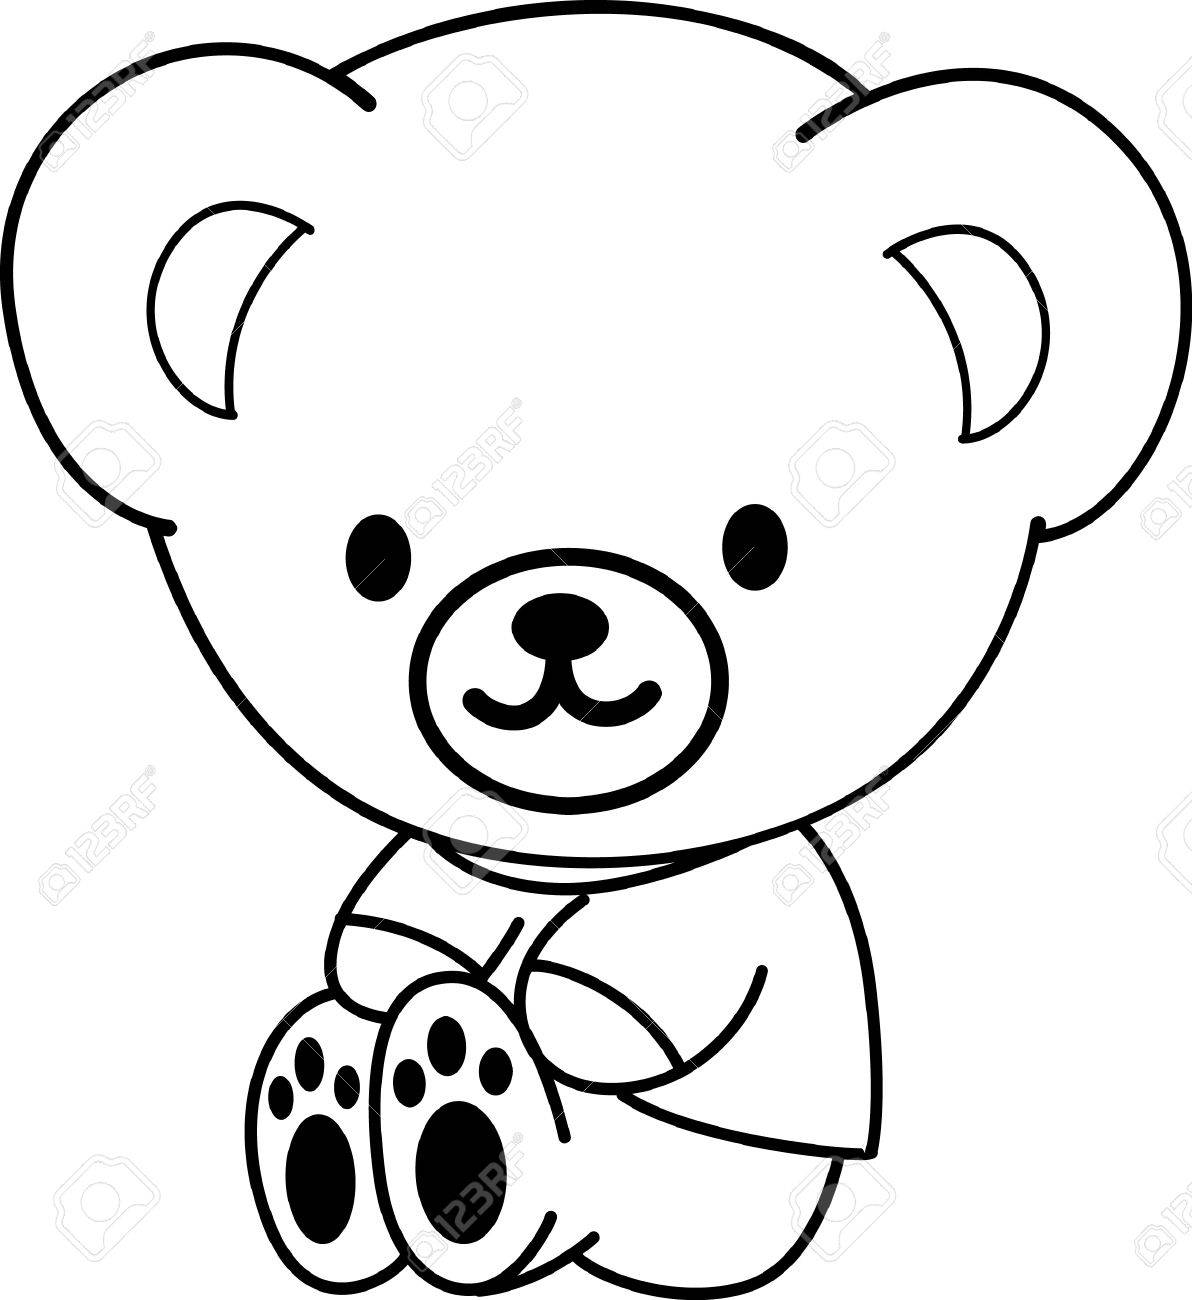 1192x1300 Cute Teddy Bear Royalty Free Cliparts, Vectors, And Stock